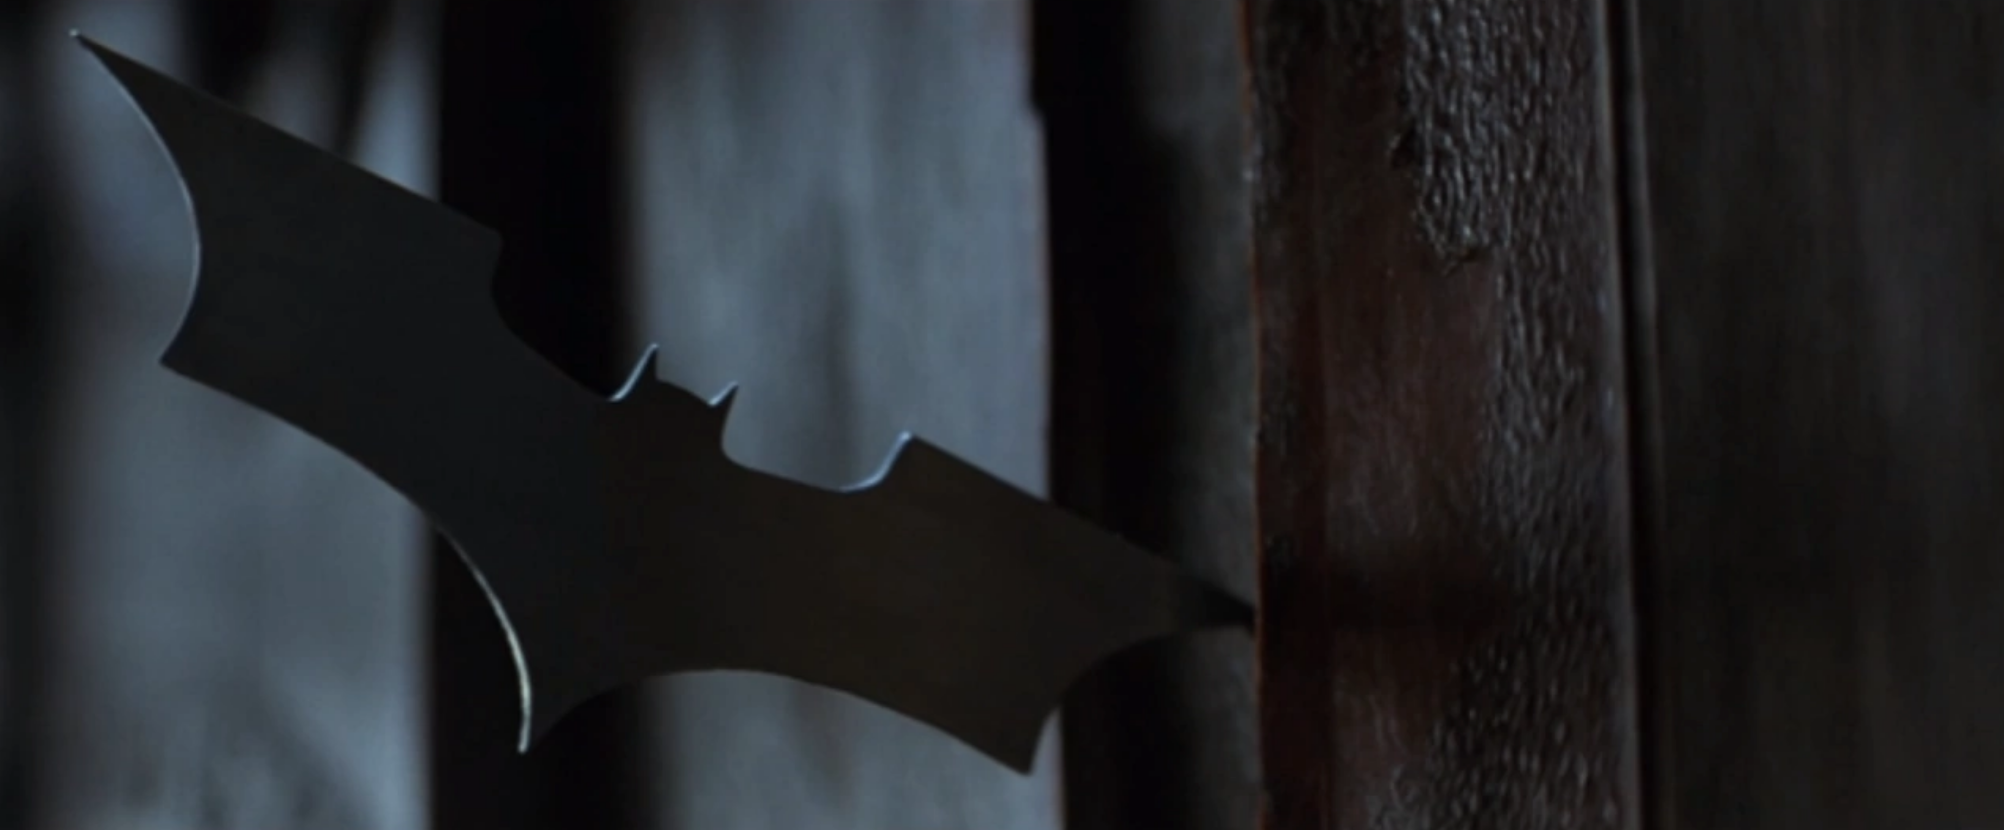 The Dark Knight': The tragedy of heroic symbols - The